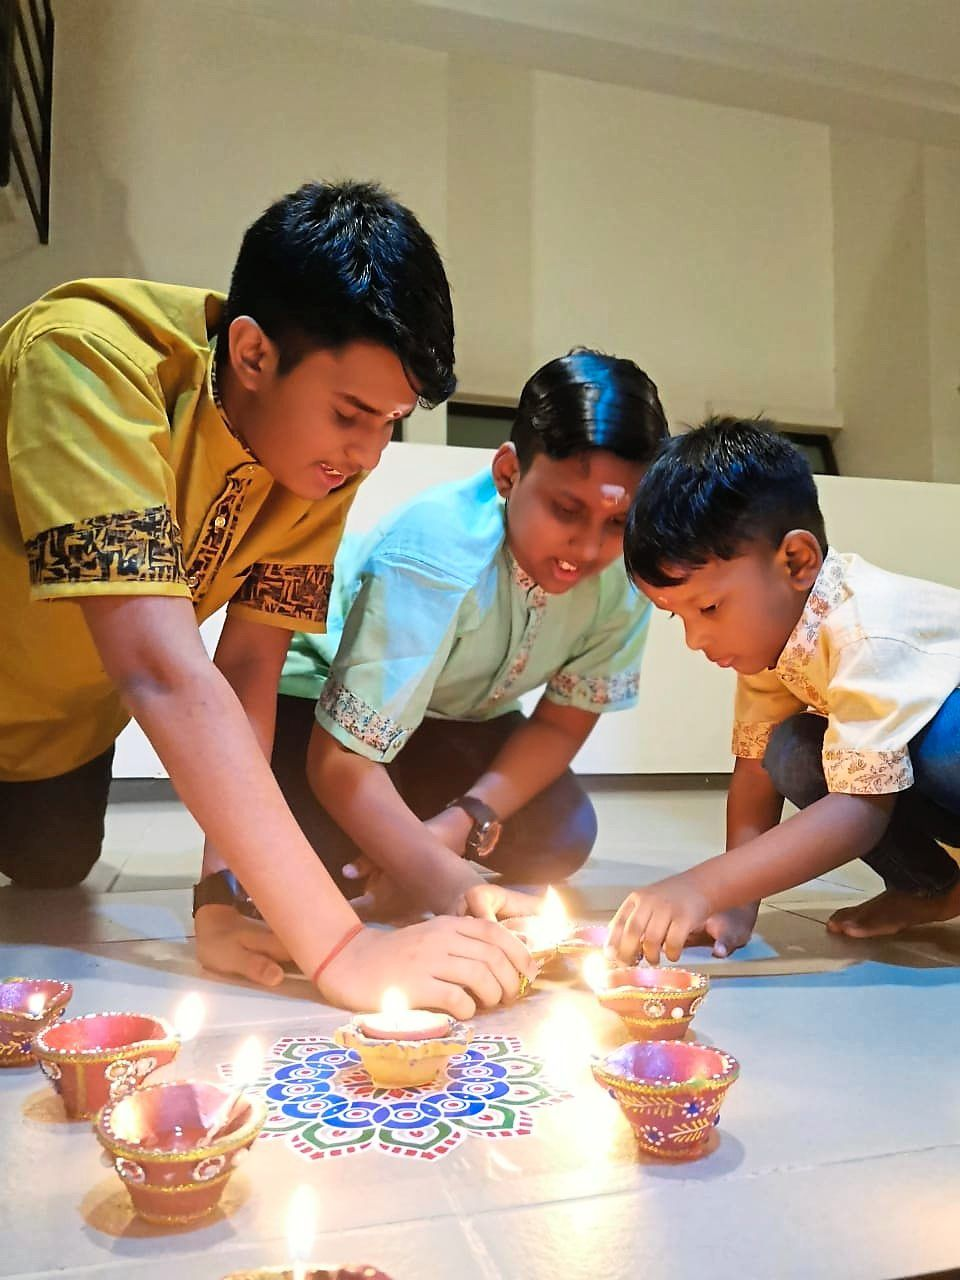 Kanagesvary's sons (from left) T. Kuhan, 13, Arwin, 11, and Kavinesh, three, lighting up agal vilakku at their house entrance.